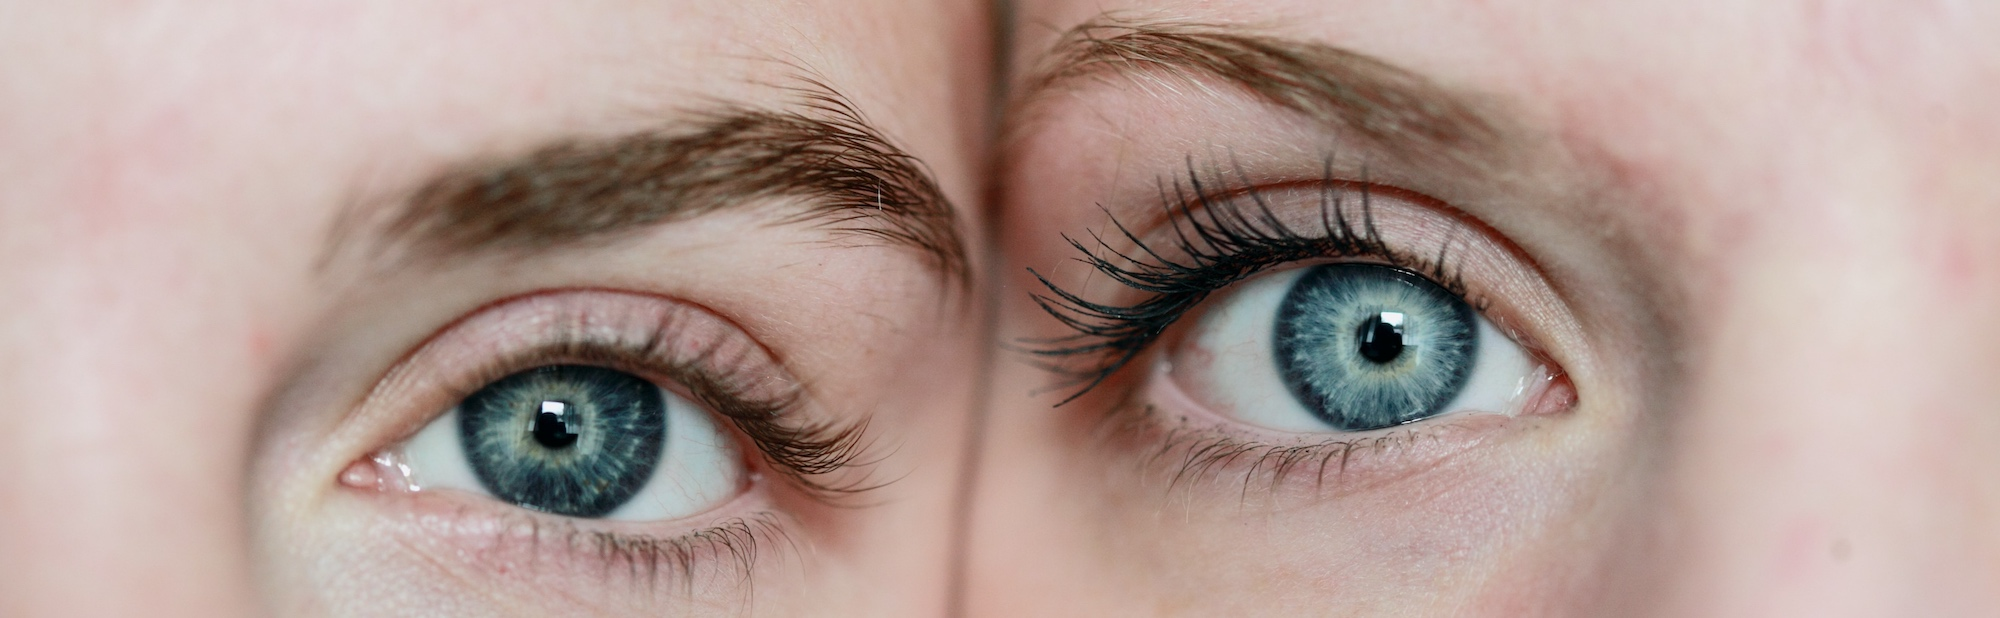 two women's eyes next to each other